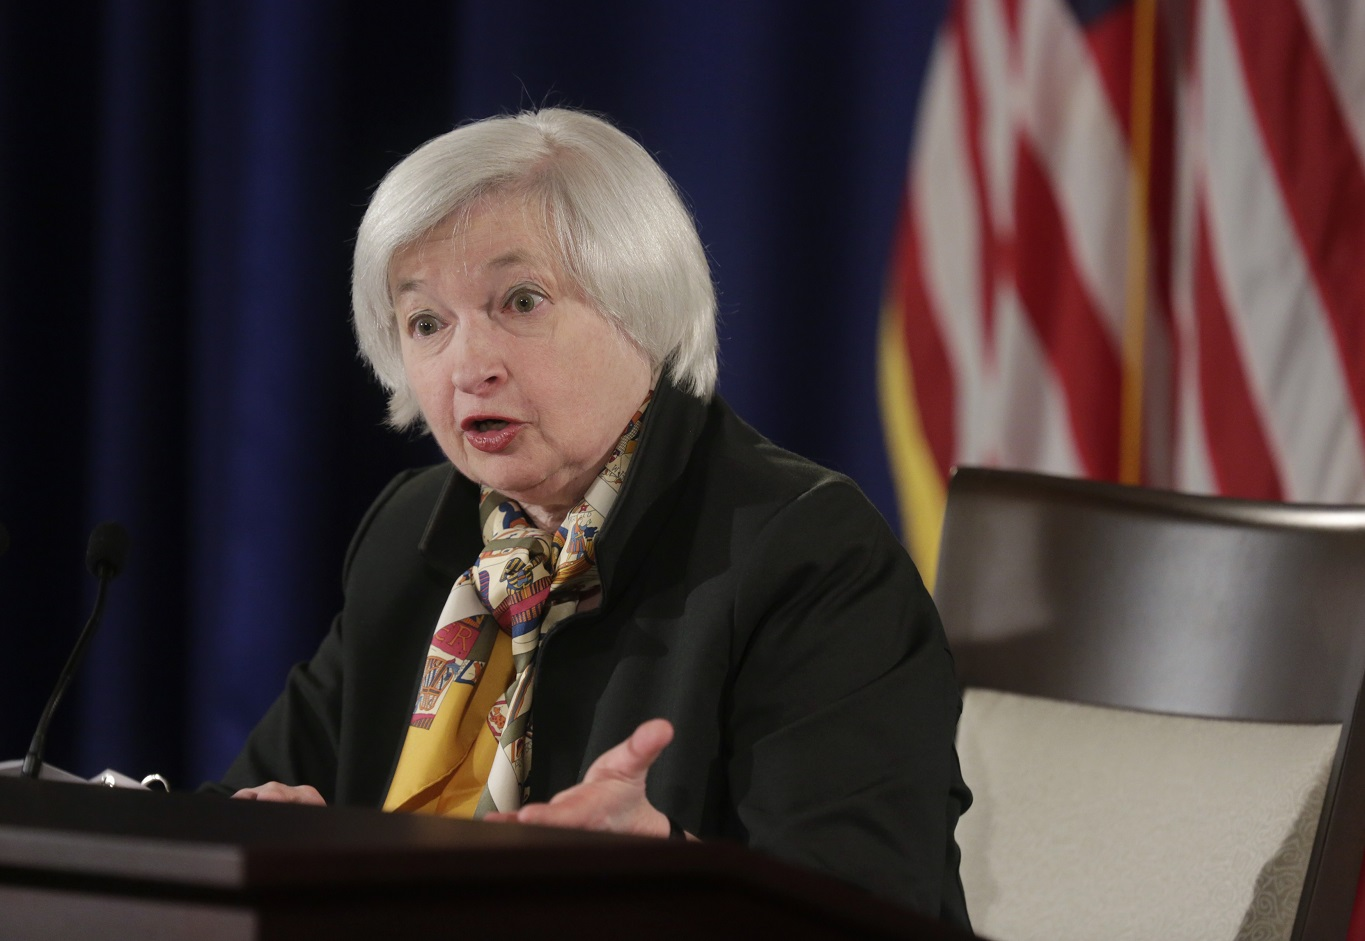 Yellen to battle the 'dark side'